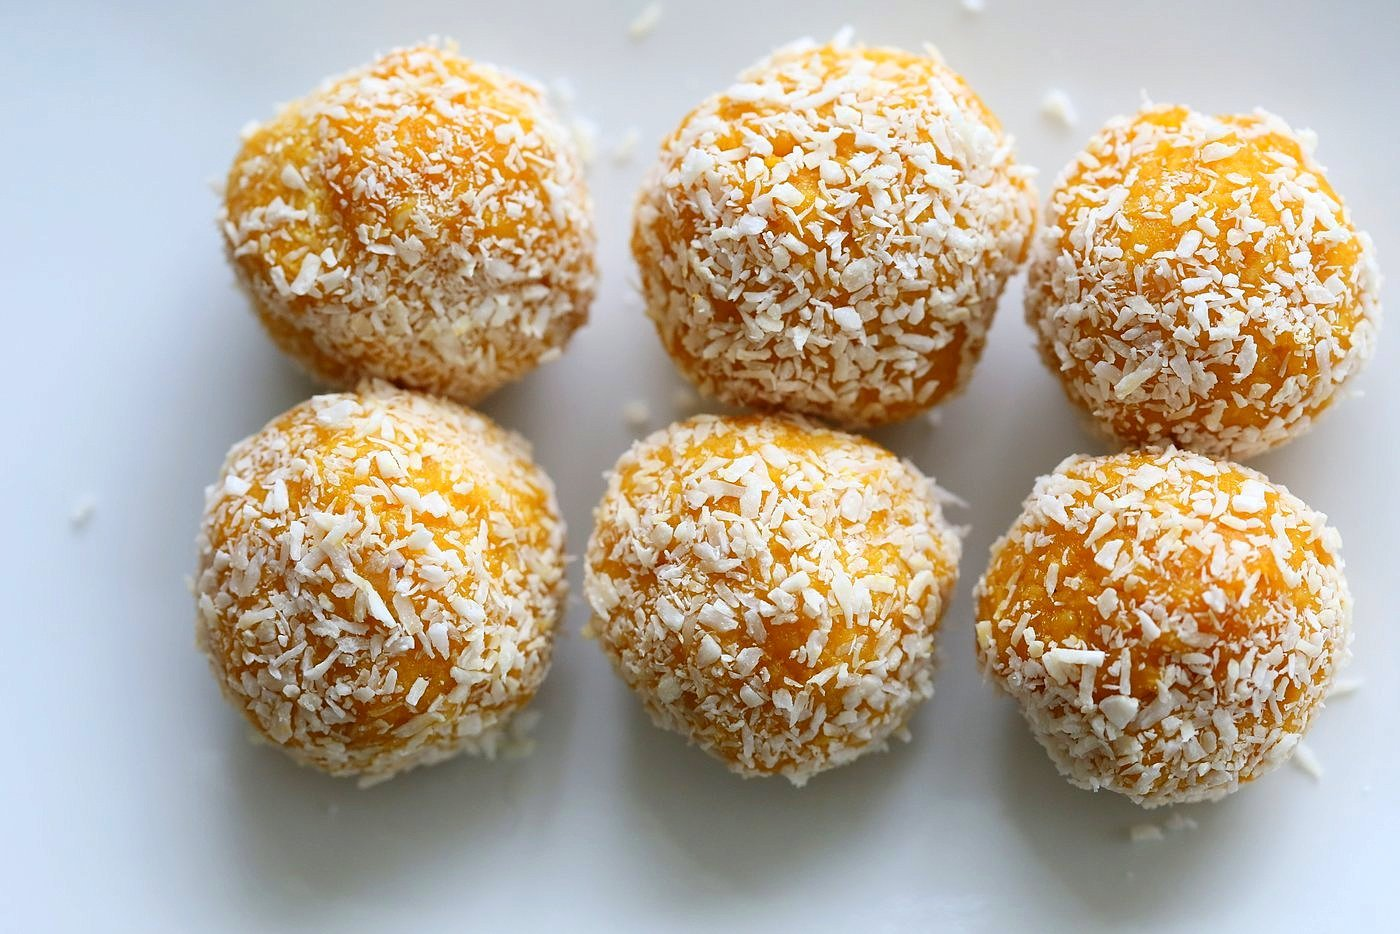 Mango Coconut Ladoo. Fudgy balls made with Mango Puree, Coconut and almond meal. Vegan gluten-free recipe. | VeganRicha.com